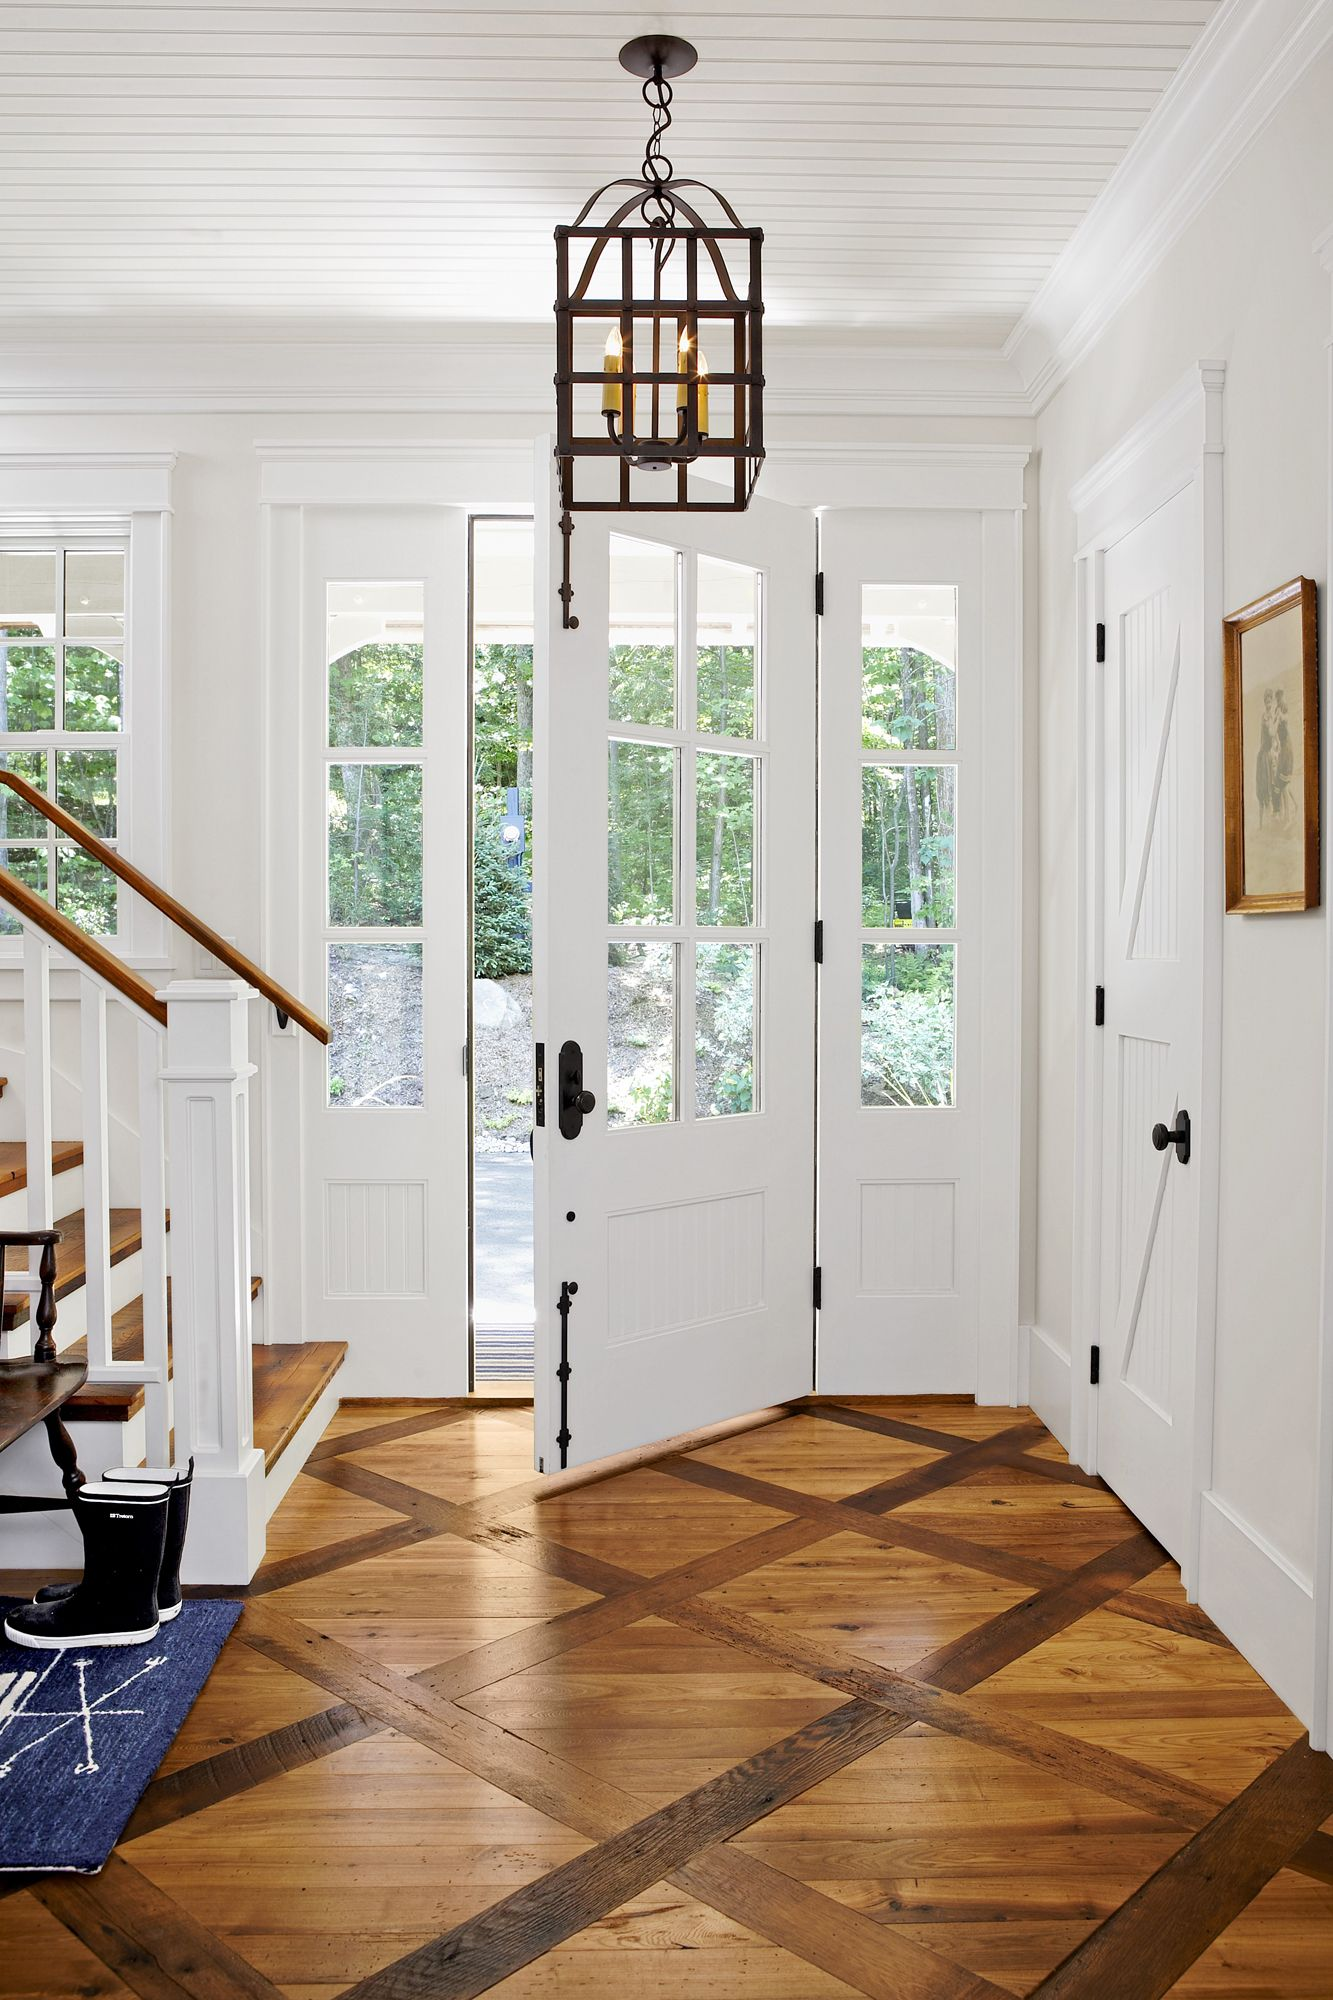 Hardwood Floor Designs - Hardwood Floor Ideas - Hardwood ...